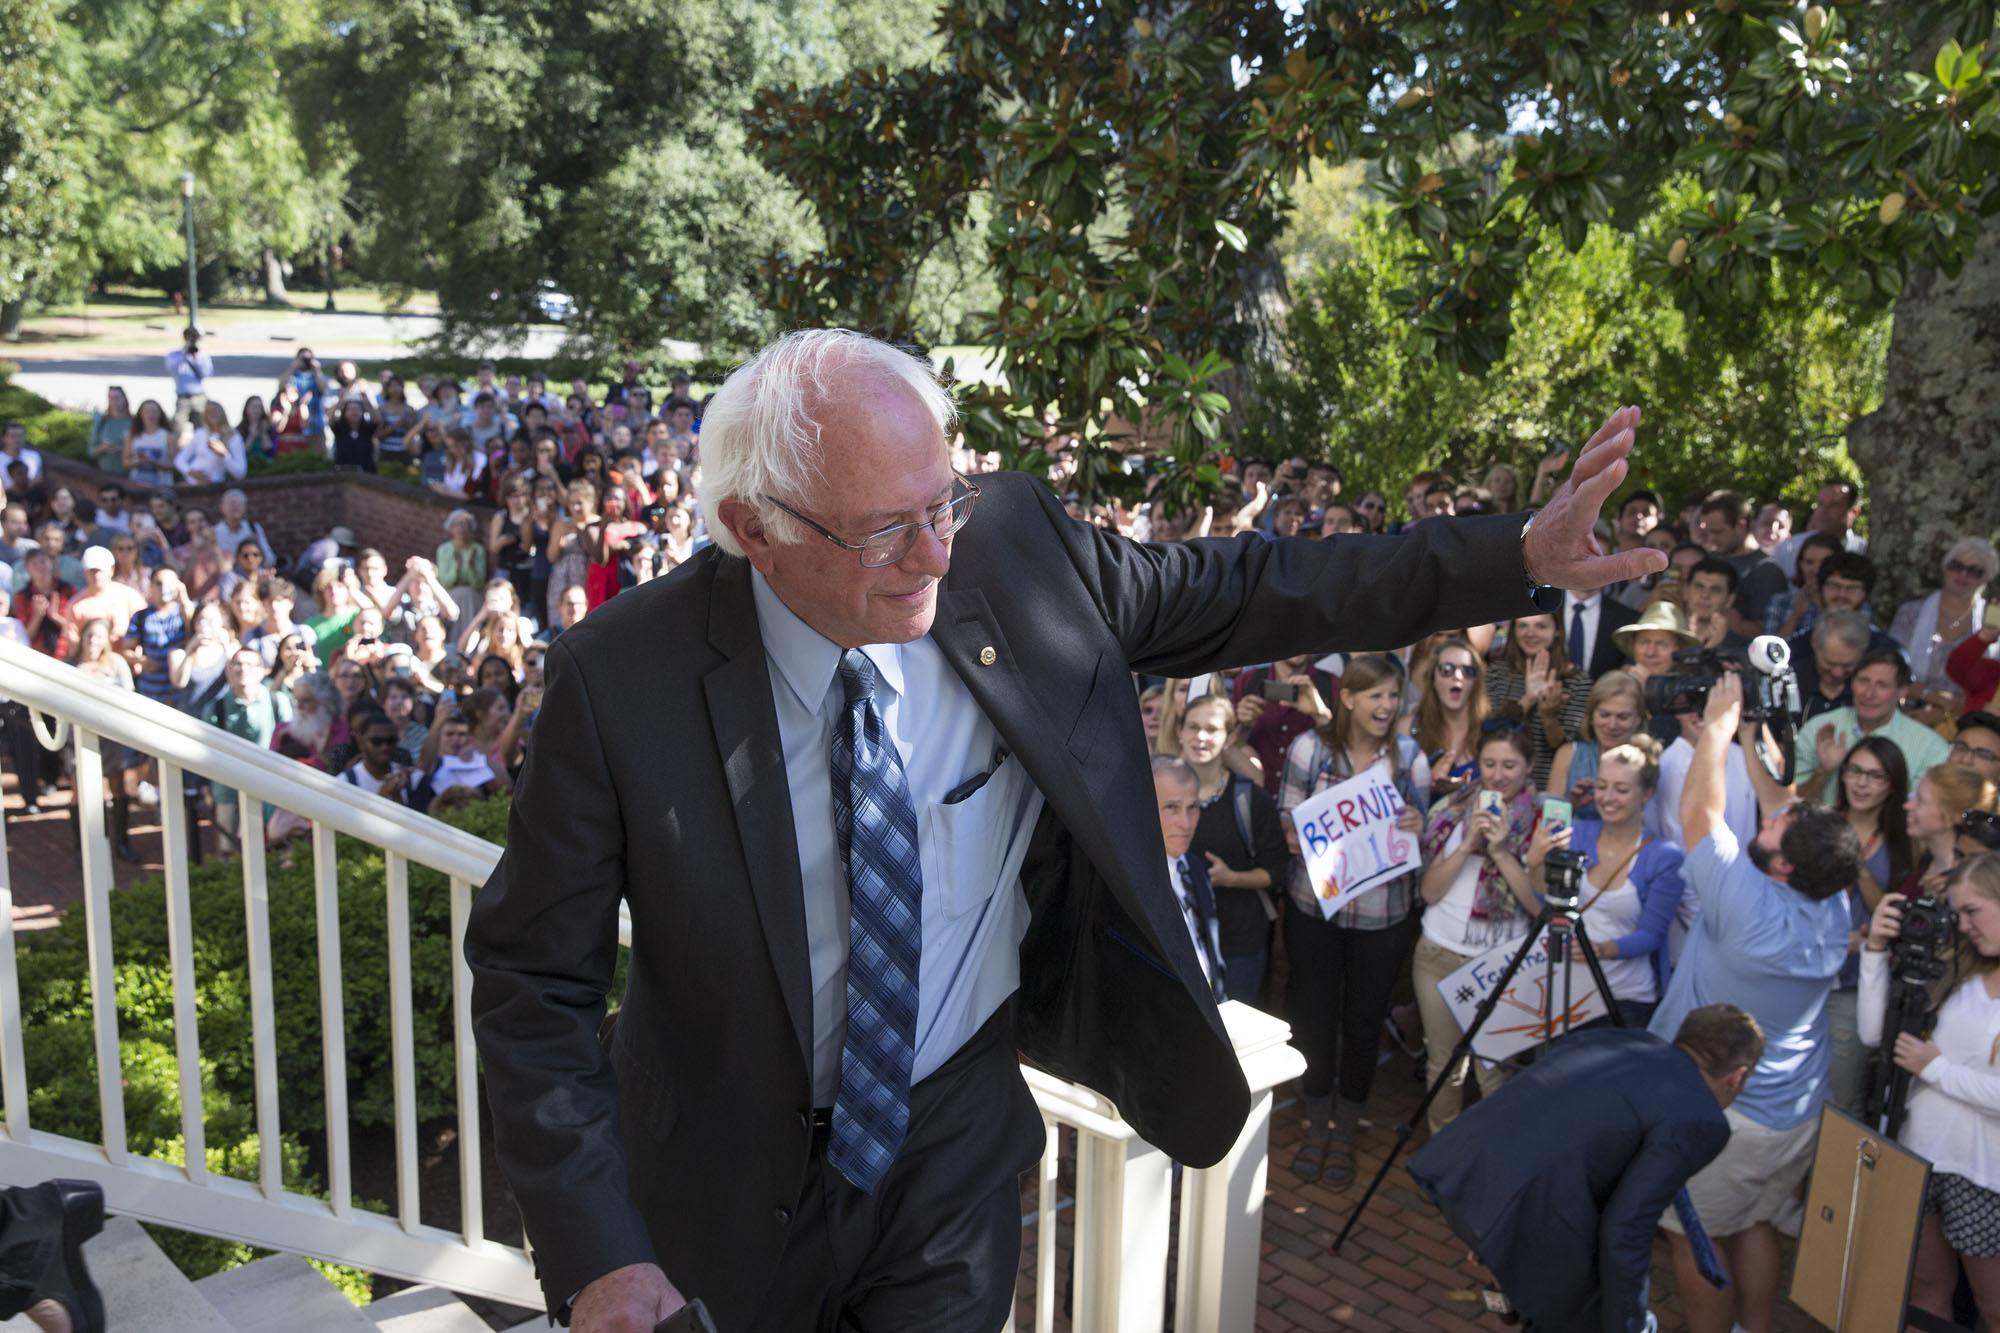 UVA's Miller Center Draws Sanders, and Sanders Draws a Crowd